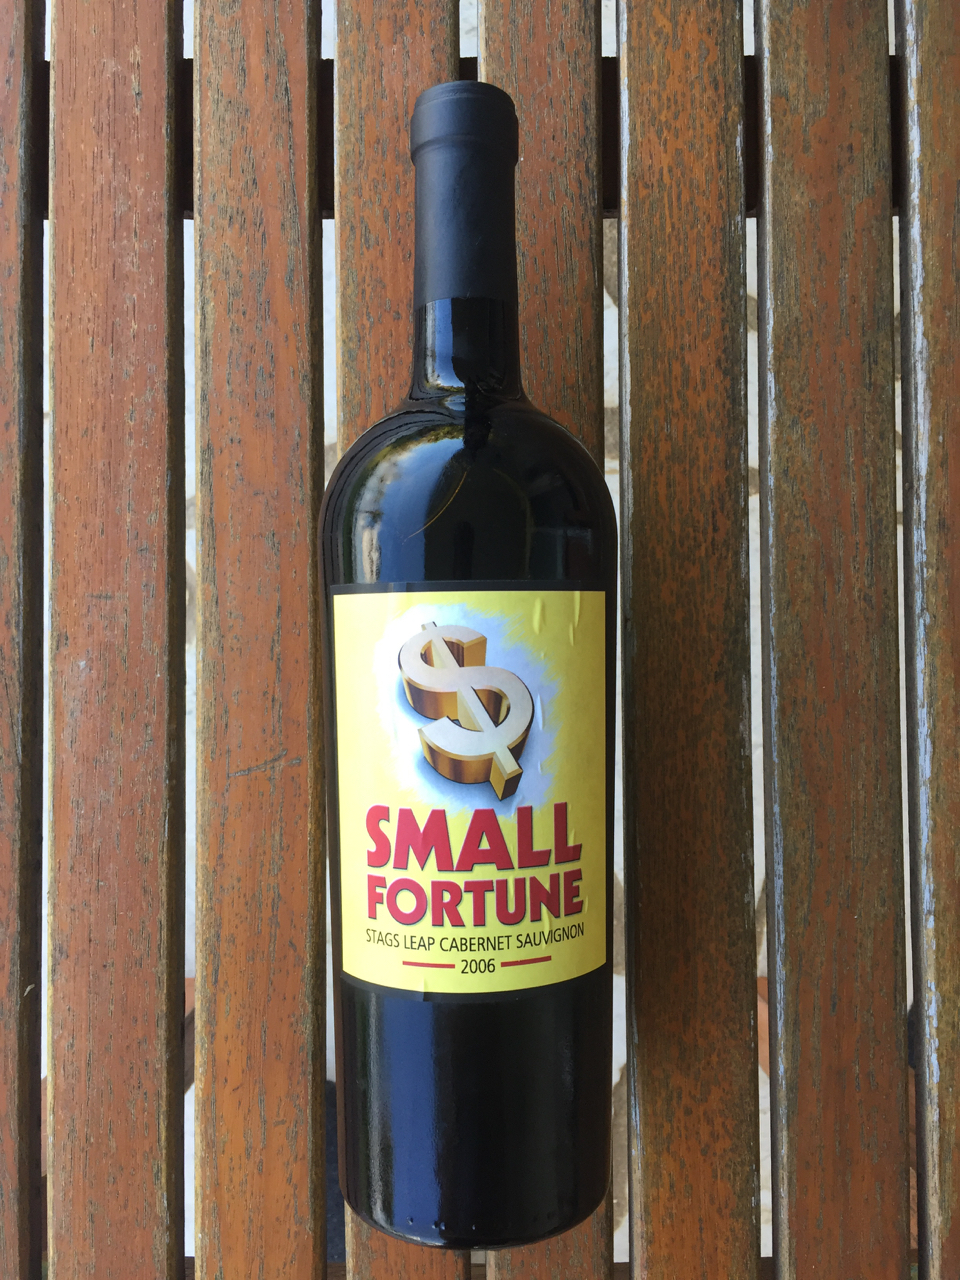 - Because the only way to make a small fortune in the wine business is to start with a bigger fortune!